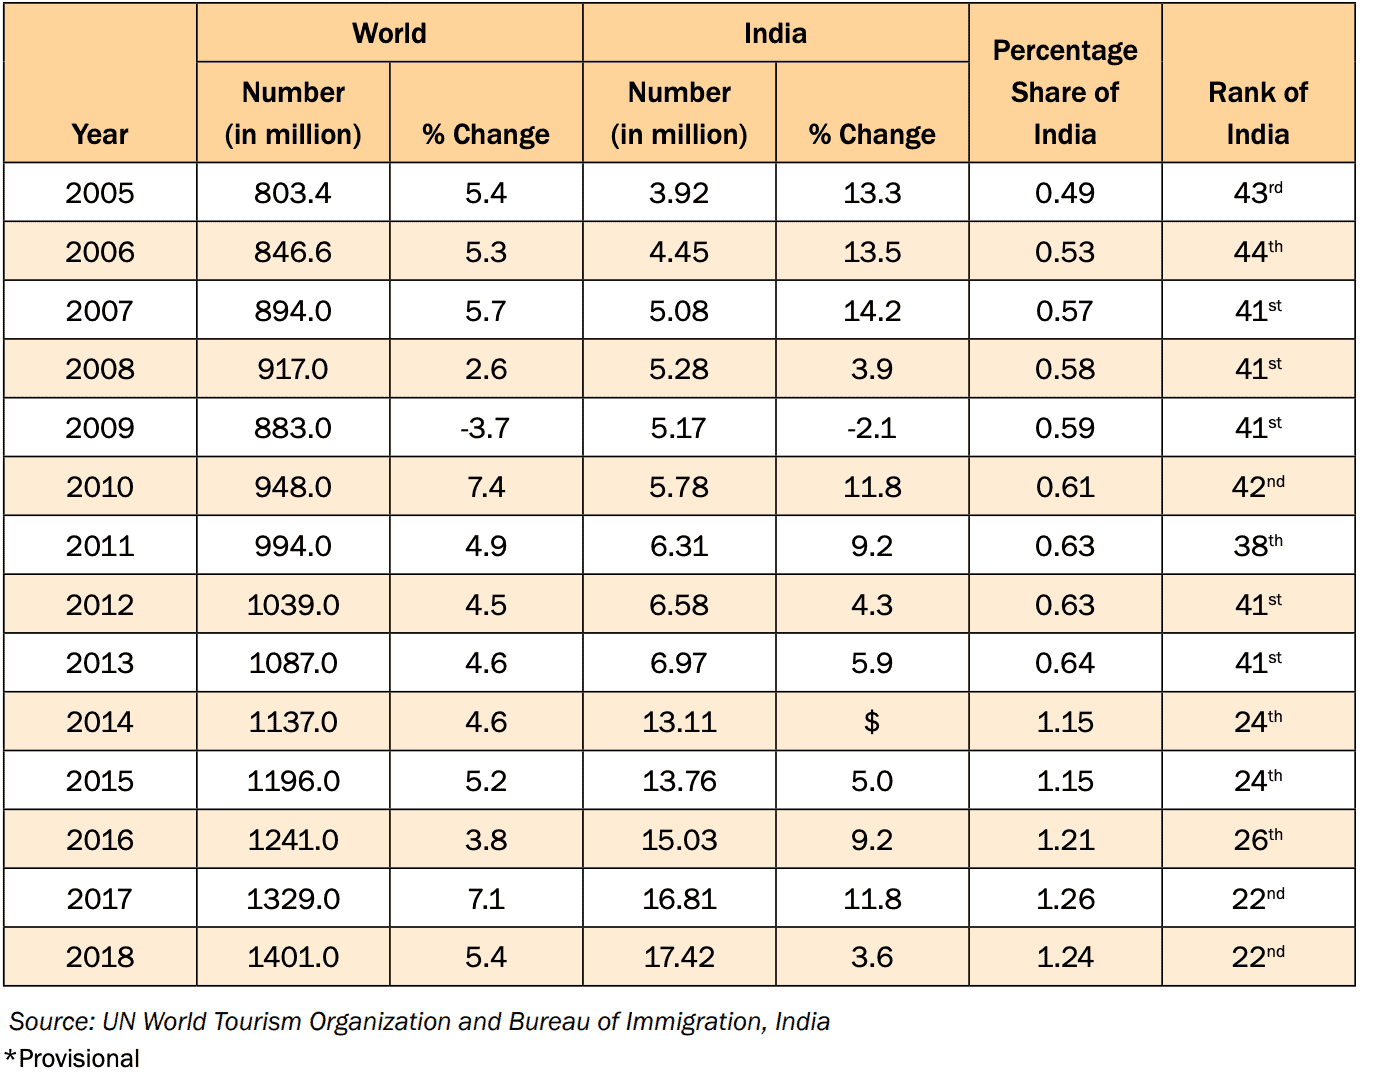 INTERNATIONAL TOURIST ARRIVALS IN WORLD AND INDIA